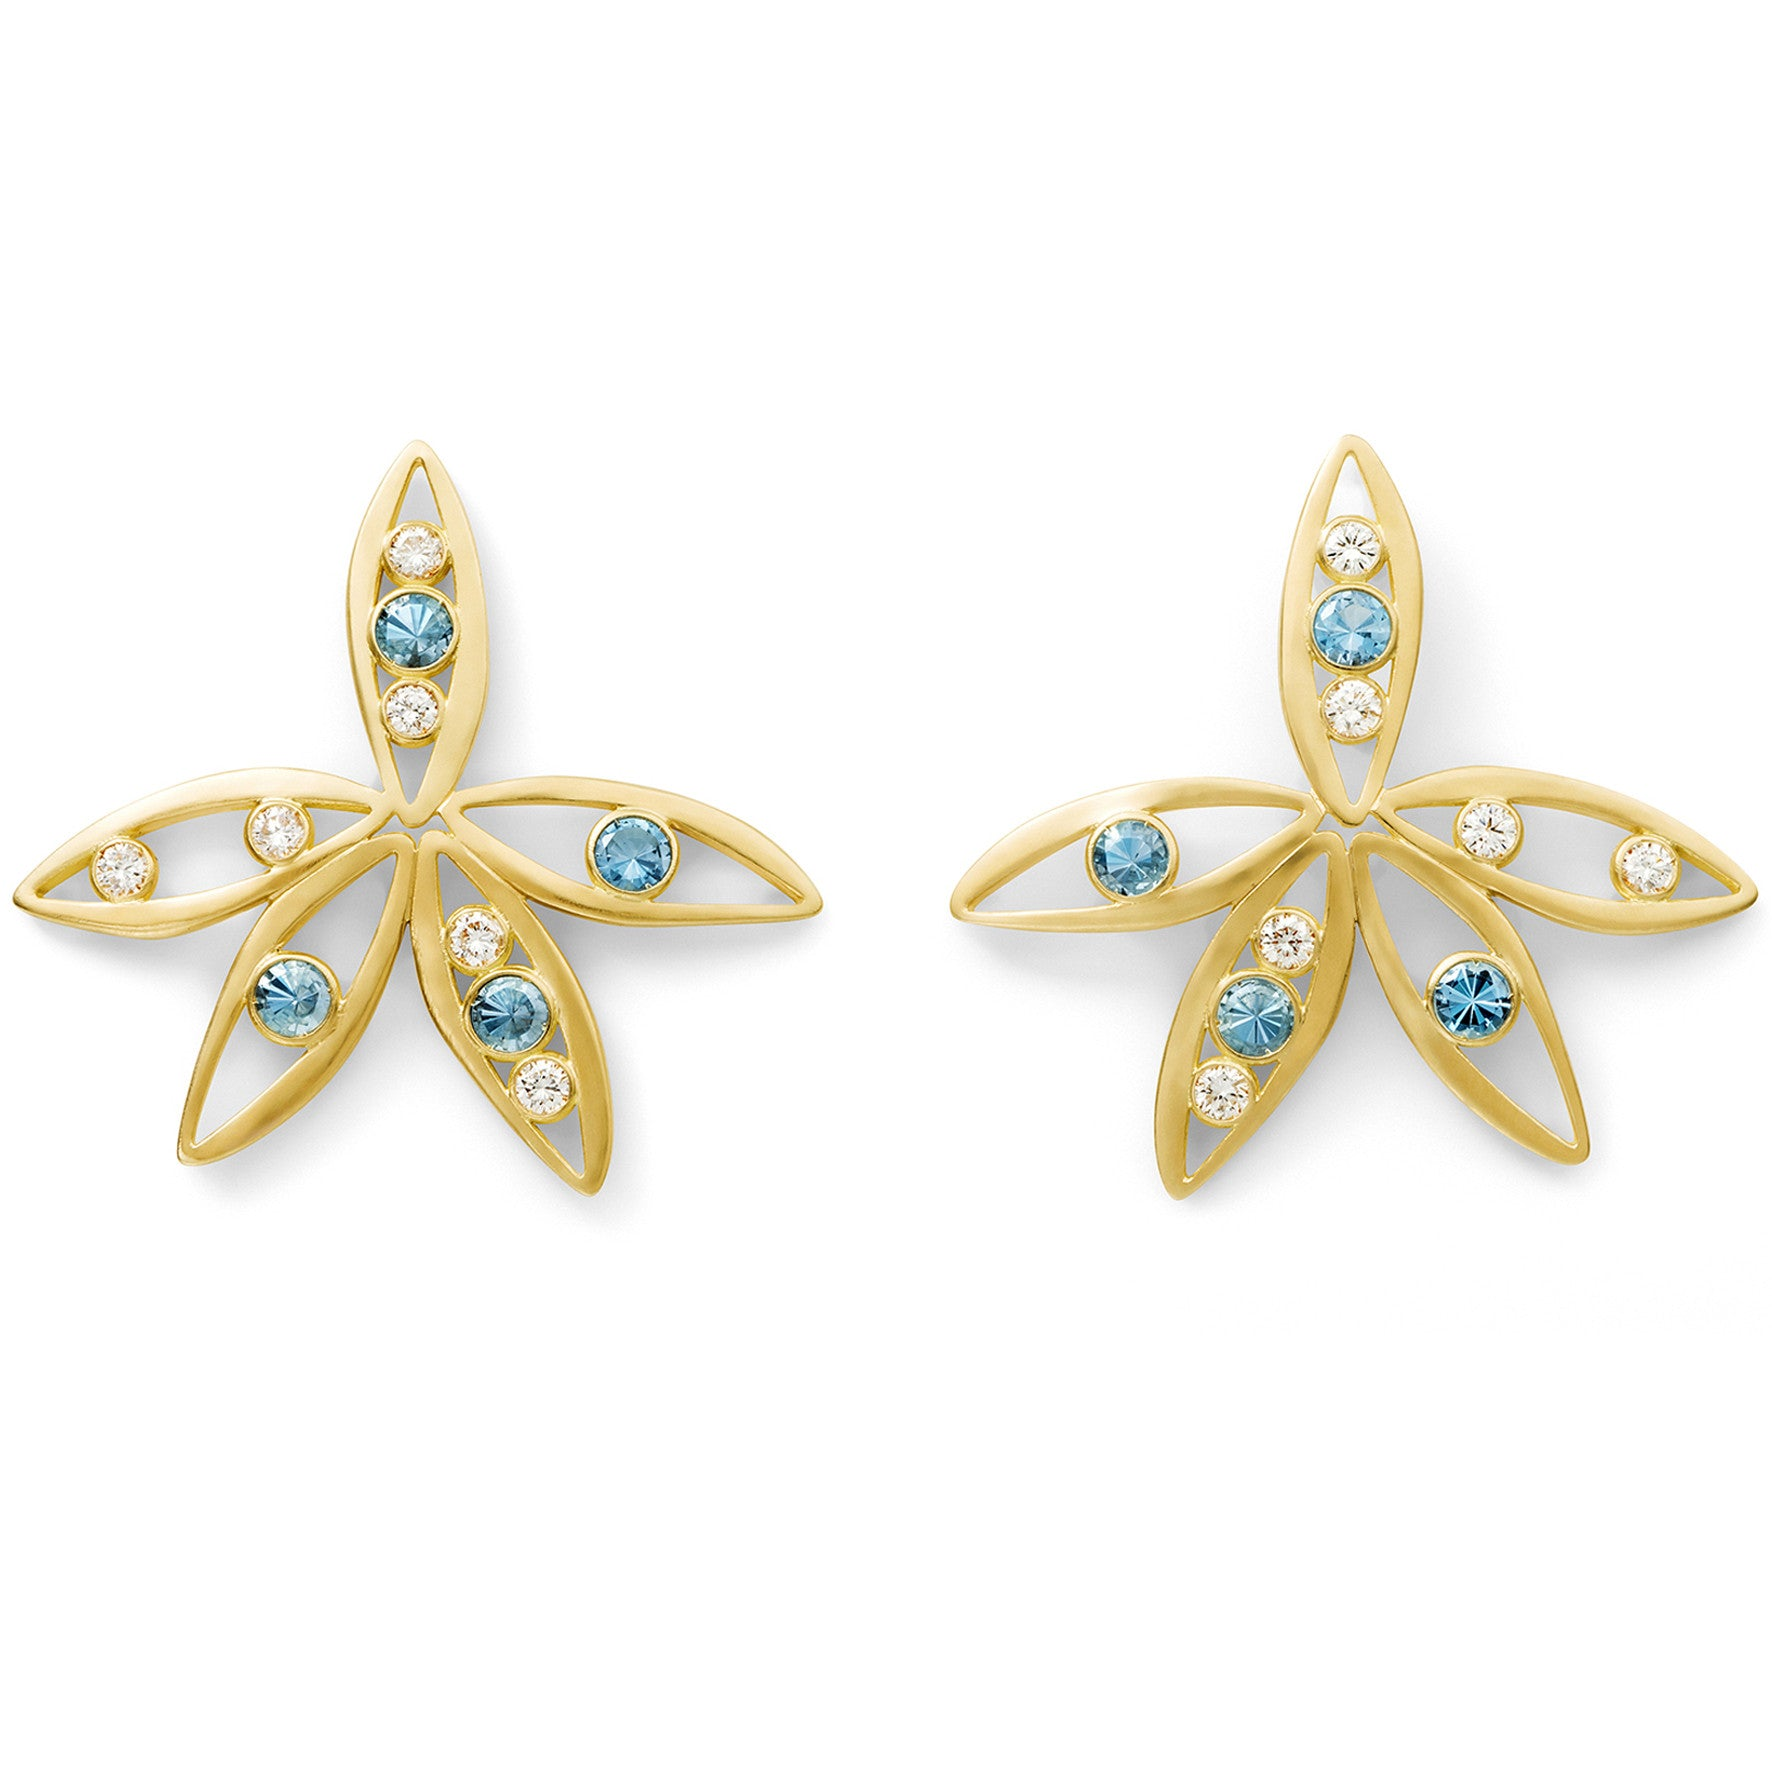 Boucles d'oreilles Bel Aloha Or jaune, Aigues-marines et Diamants